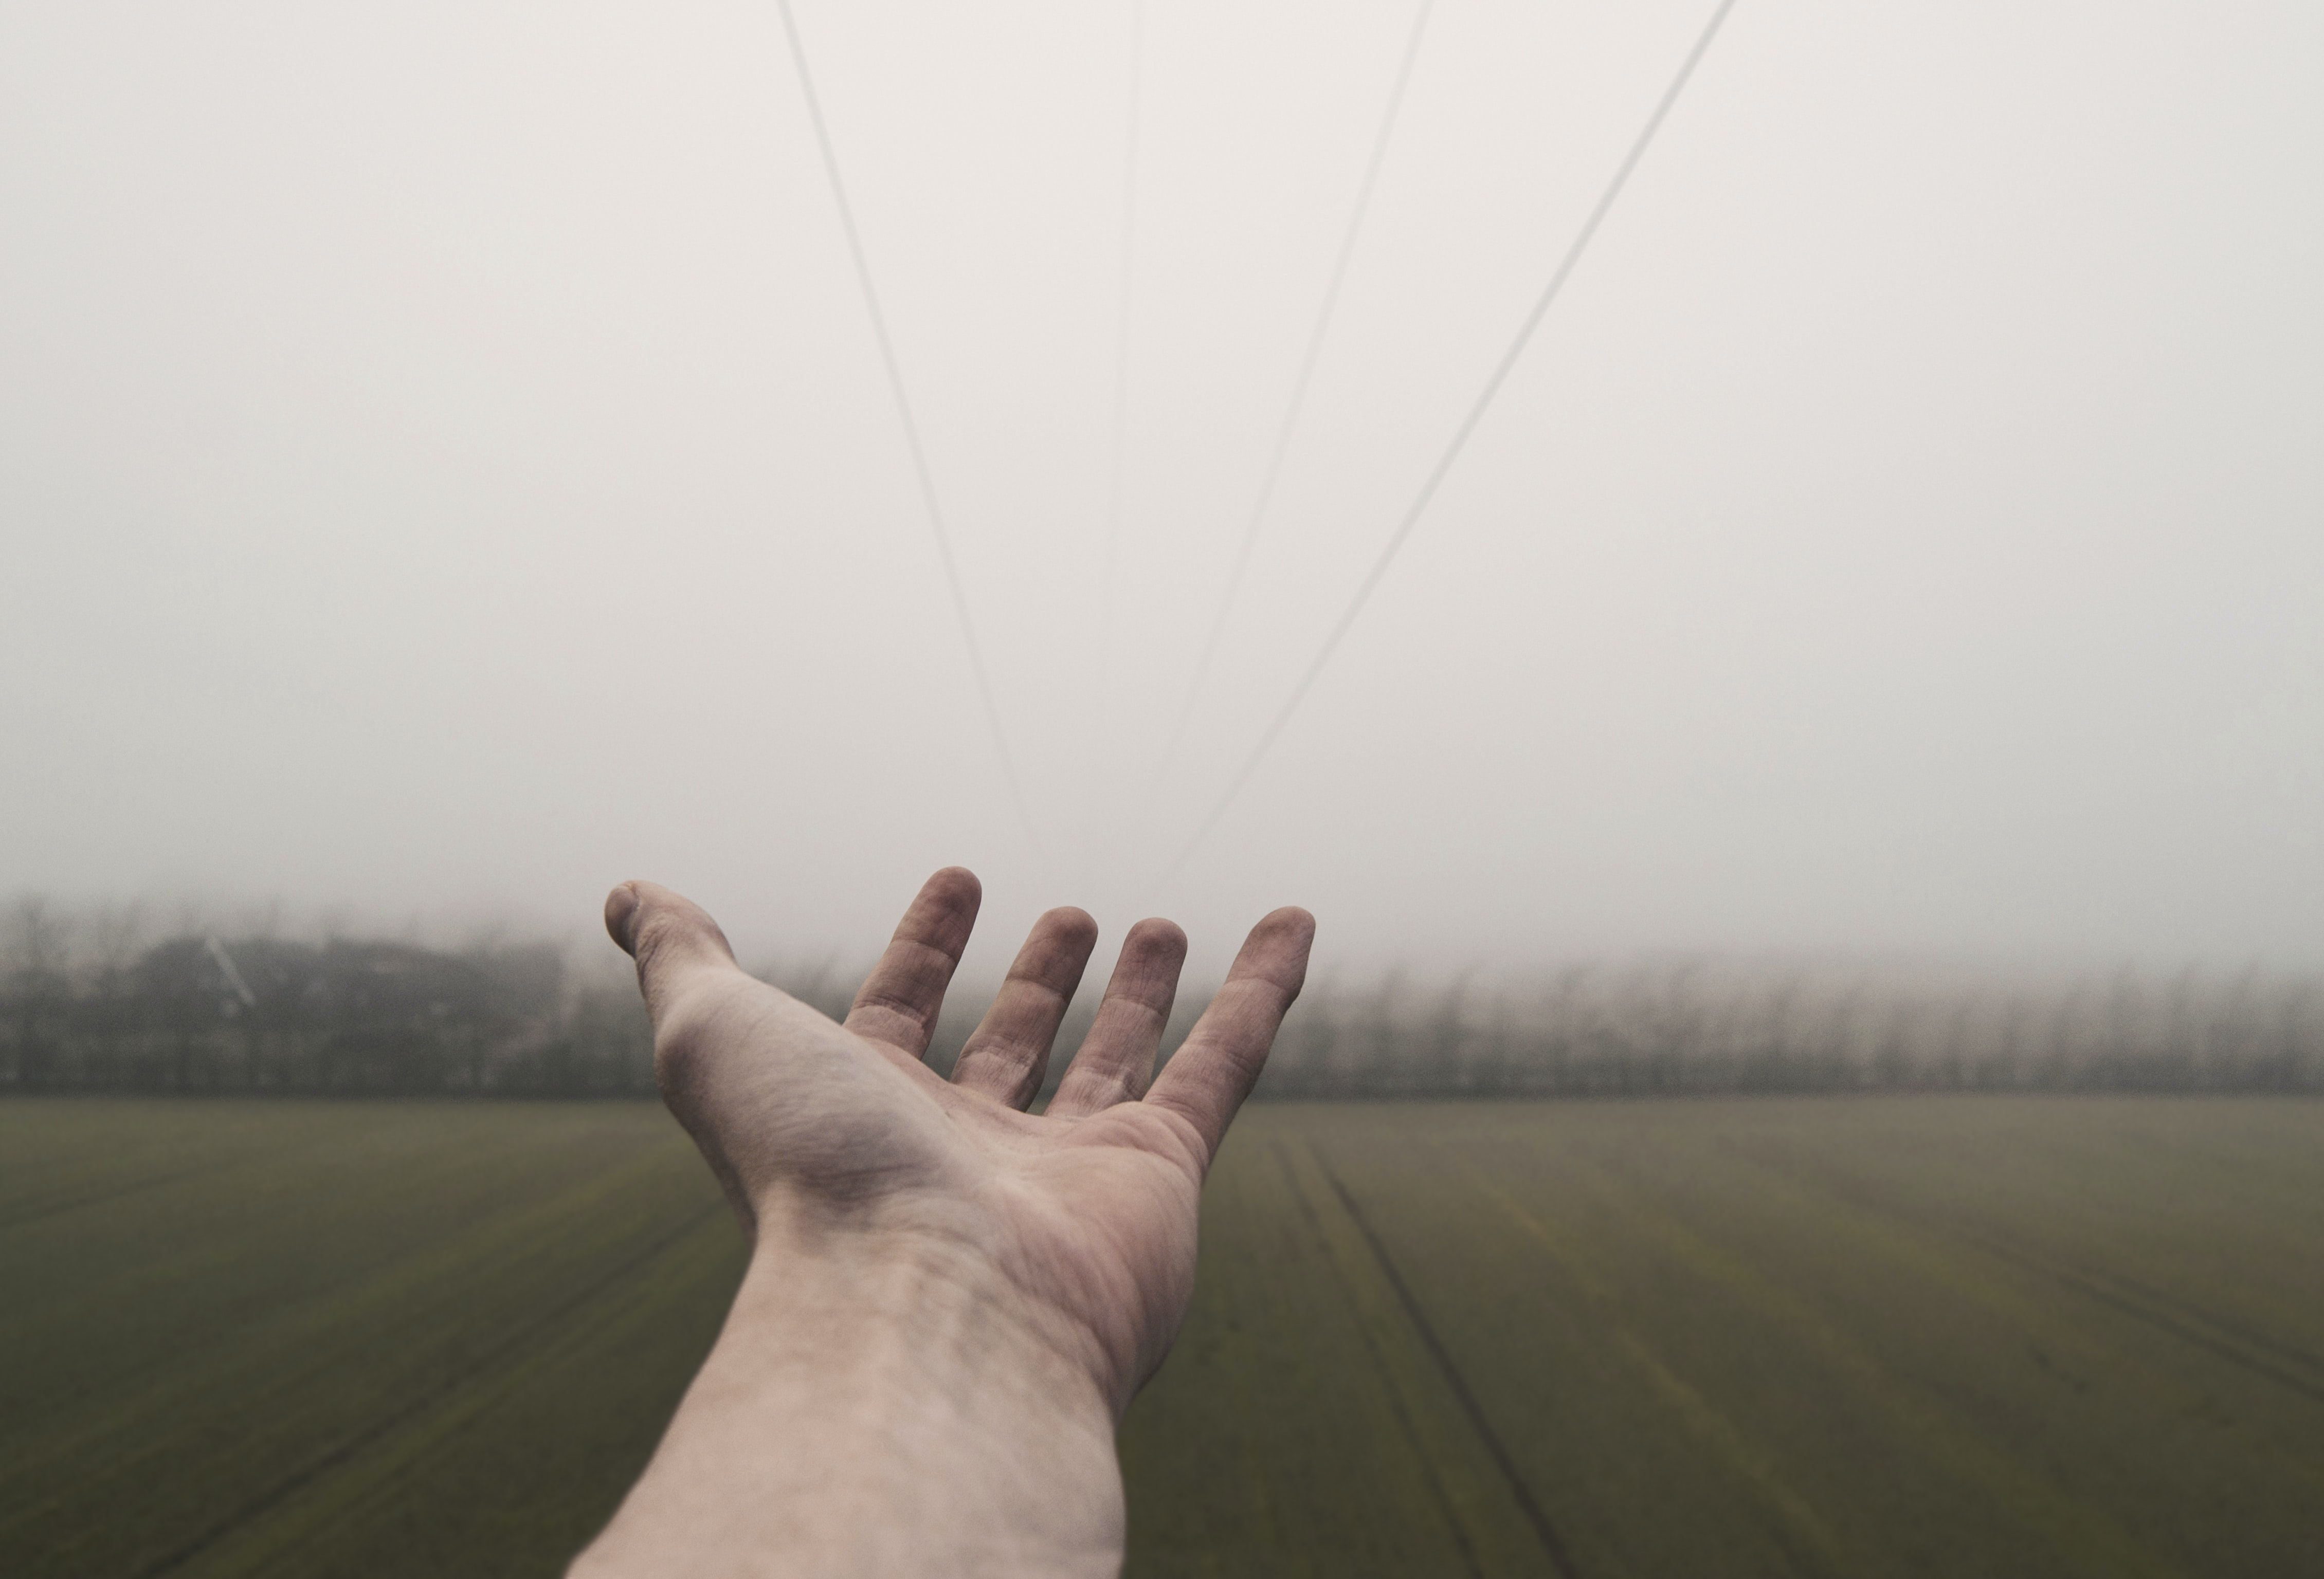 A hand reaching out into a field.